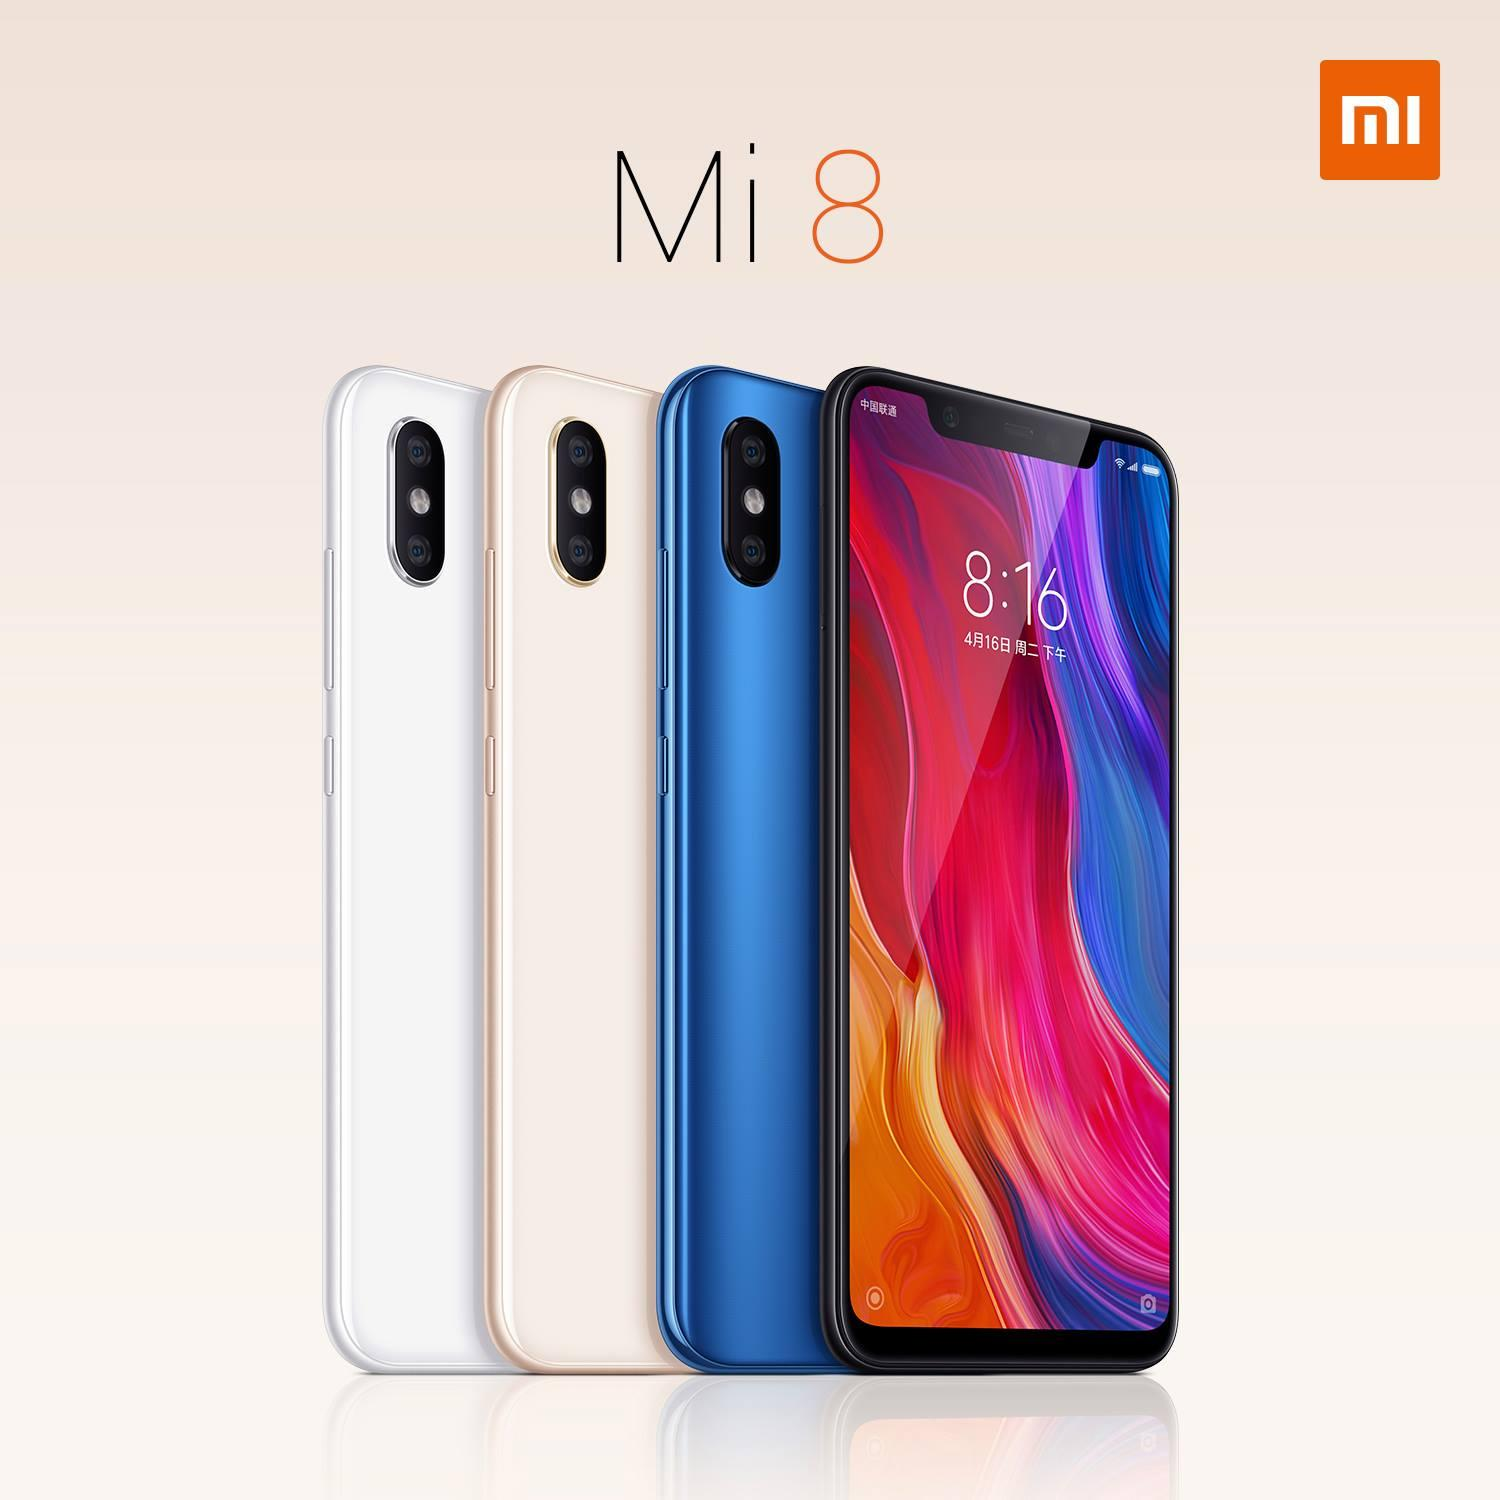 The flagship Xiaomi Mi 8 officially presented